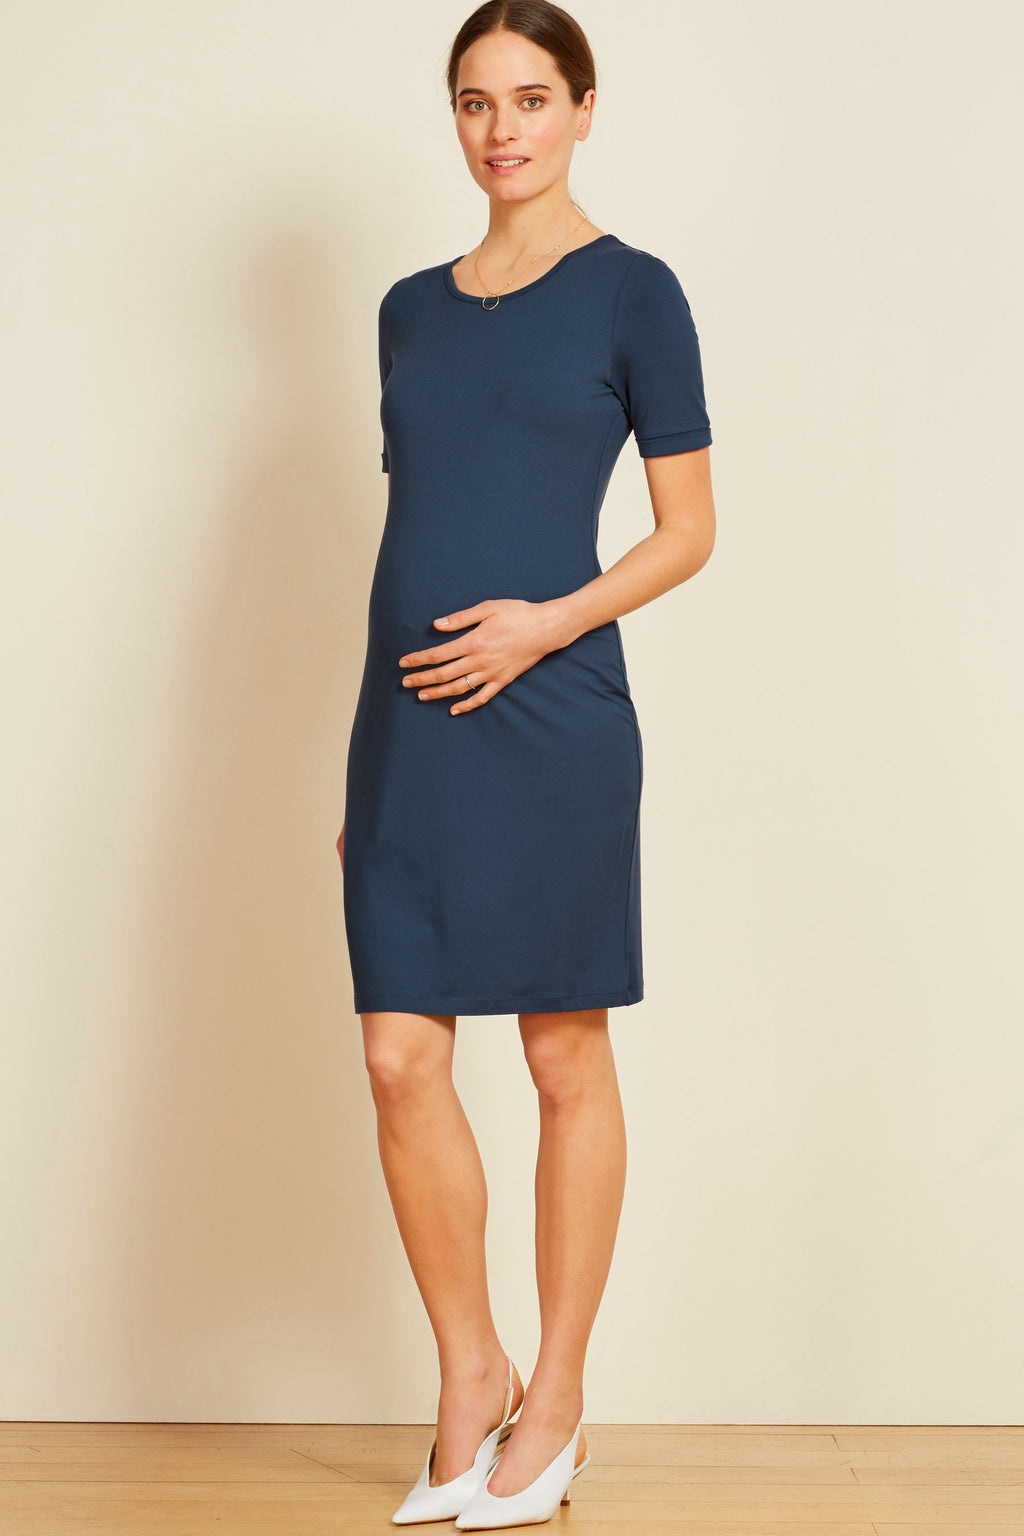 Isabella Oliver Ellie NOT RUCHED Maternity Dress - Seven Women Maternity